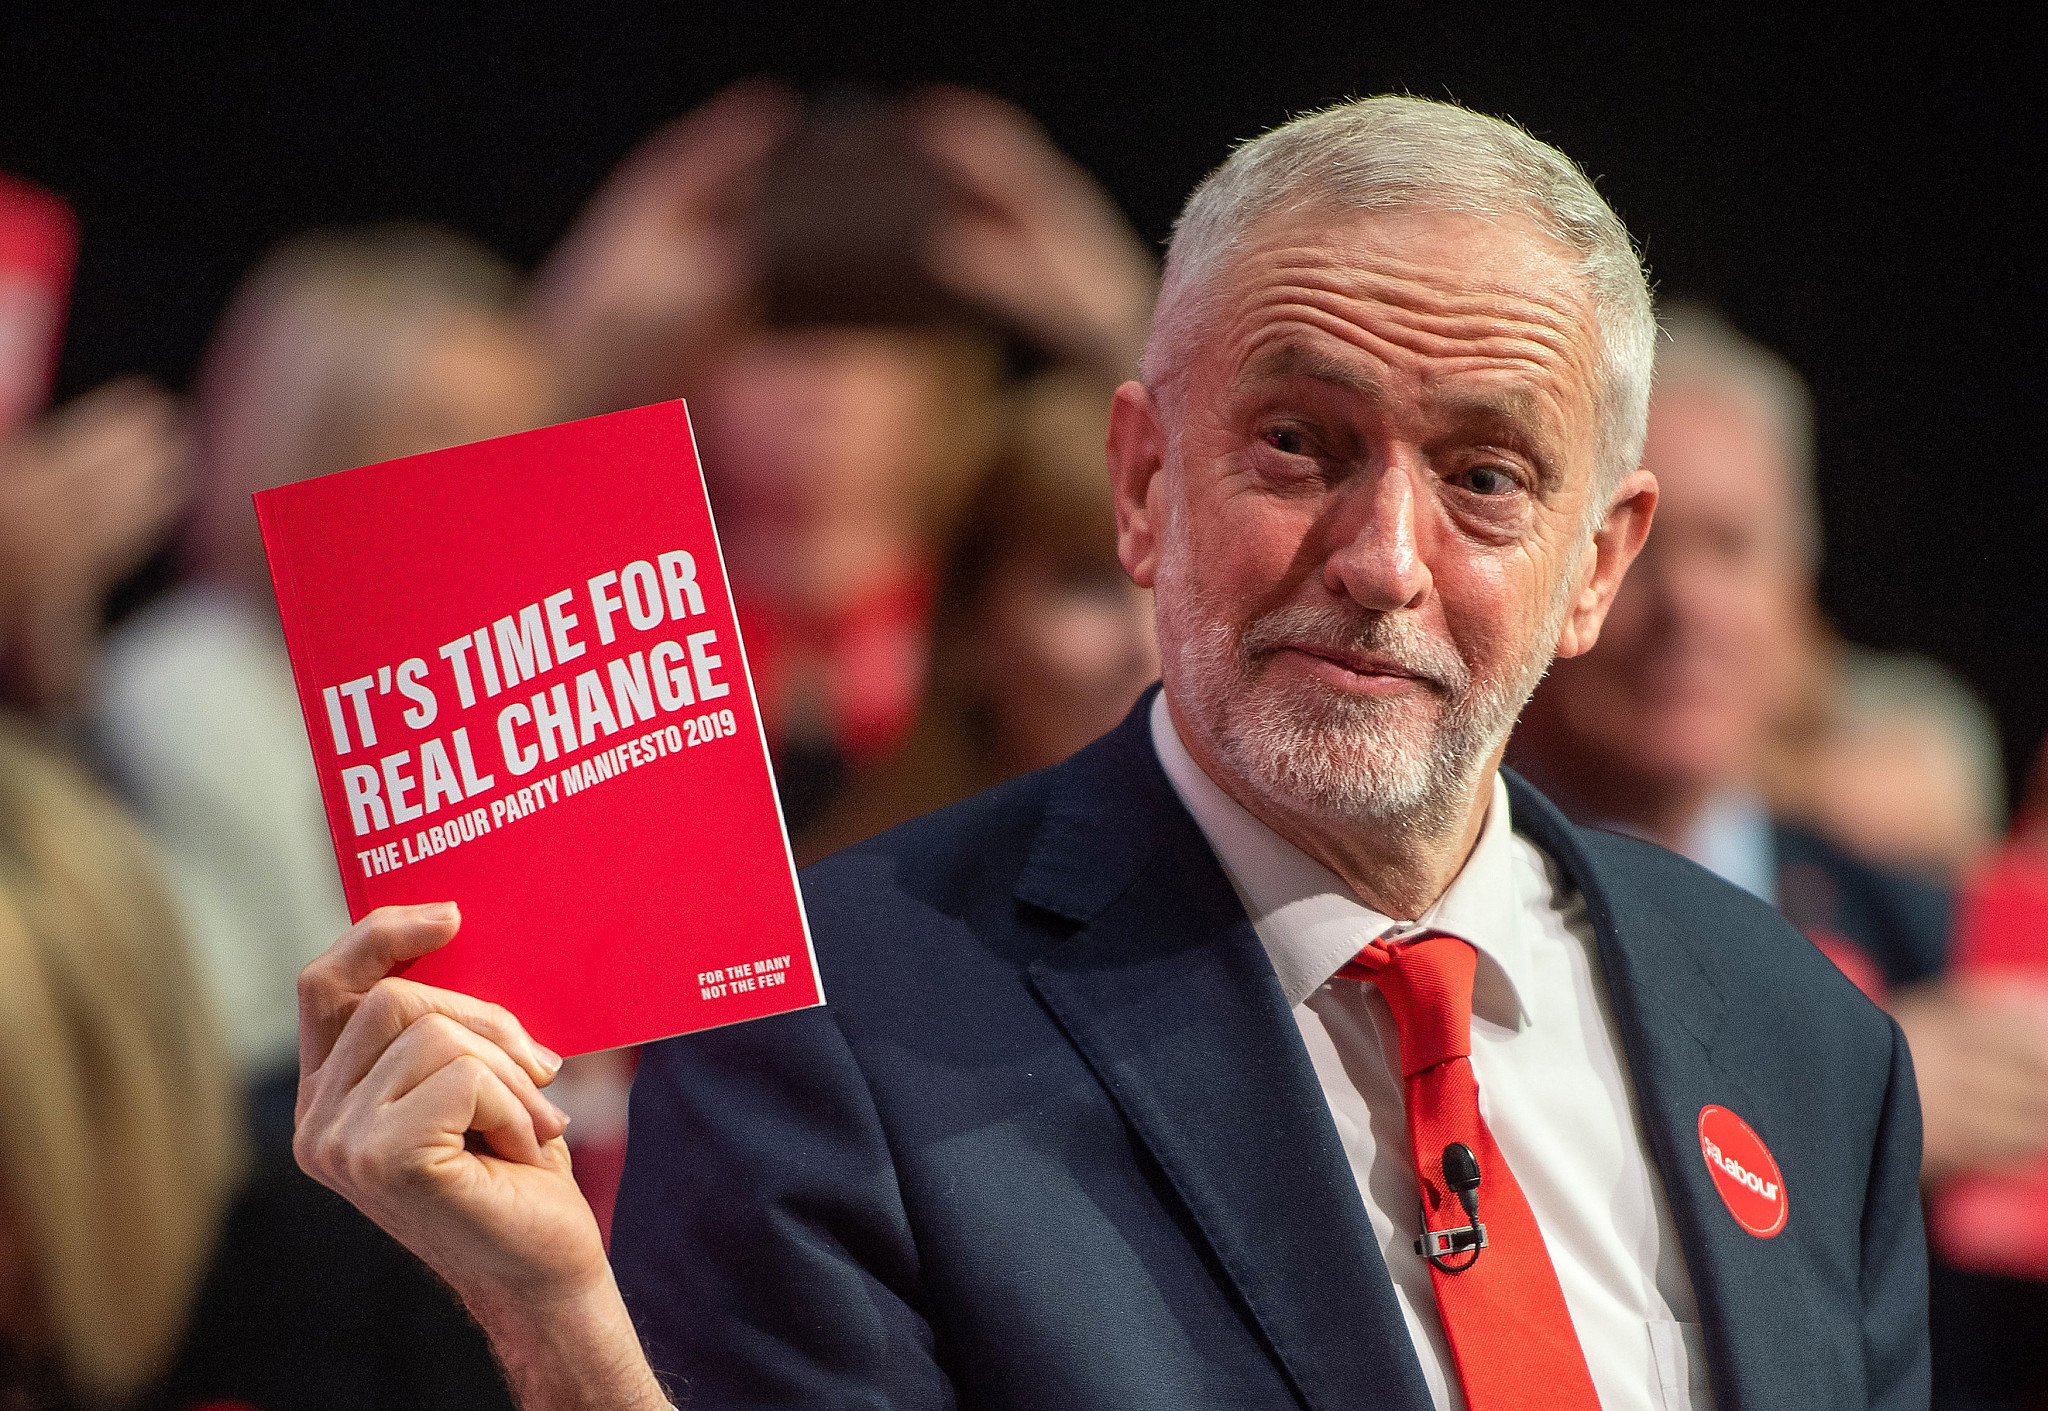 Labour's manifesto is a blueprint for boycotts and bullying of Israel